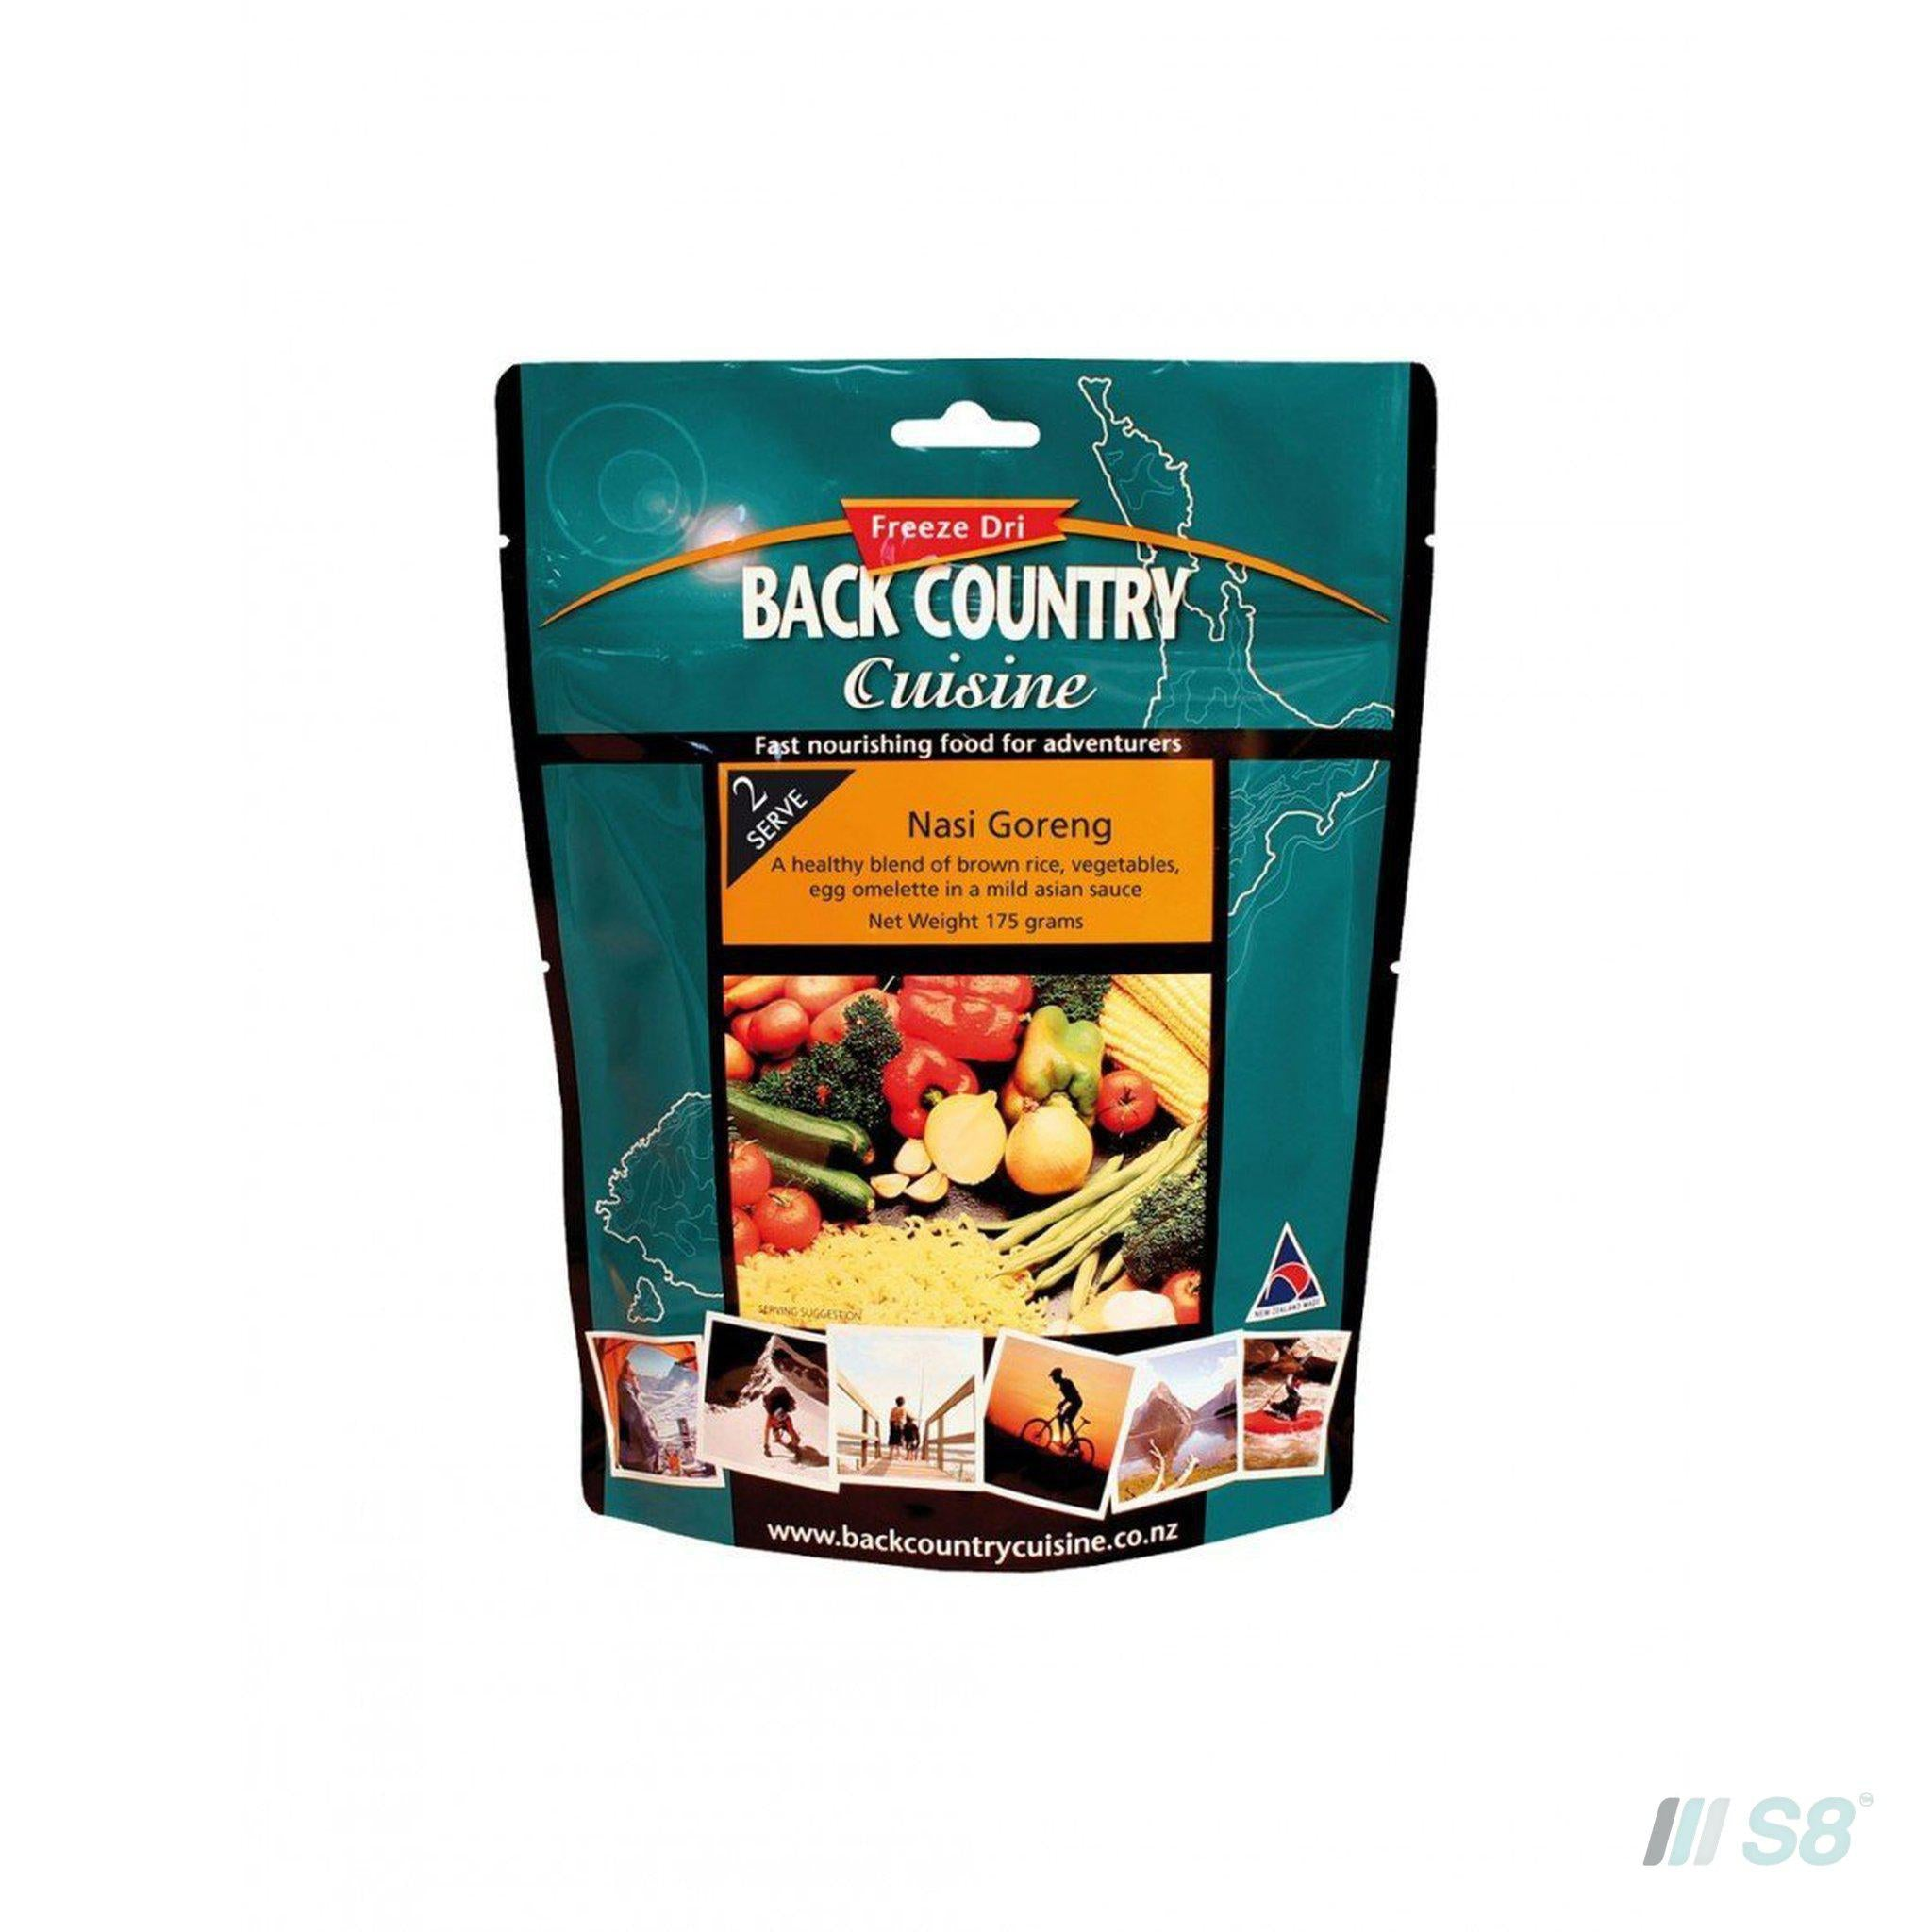 Back Country Cuisine Nasi Goreng-BCC-S8 Products Group